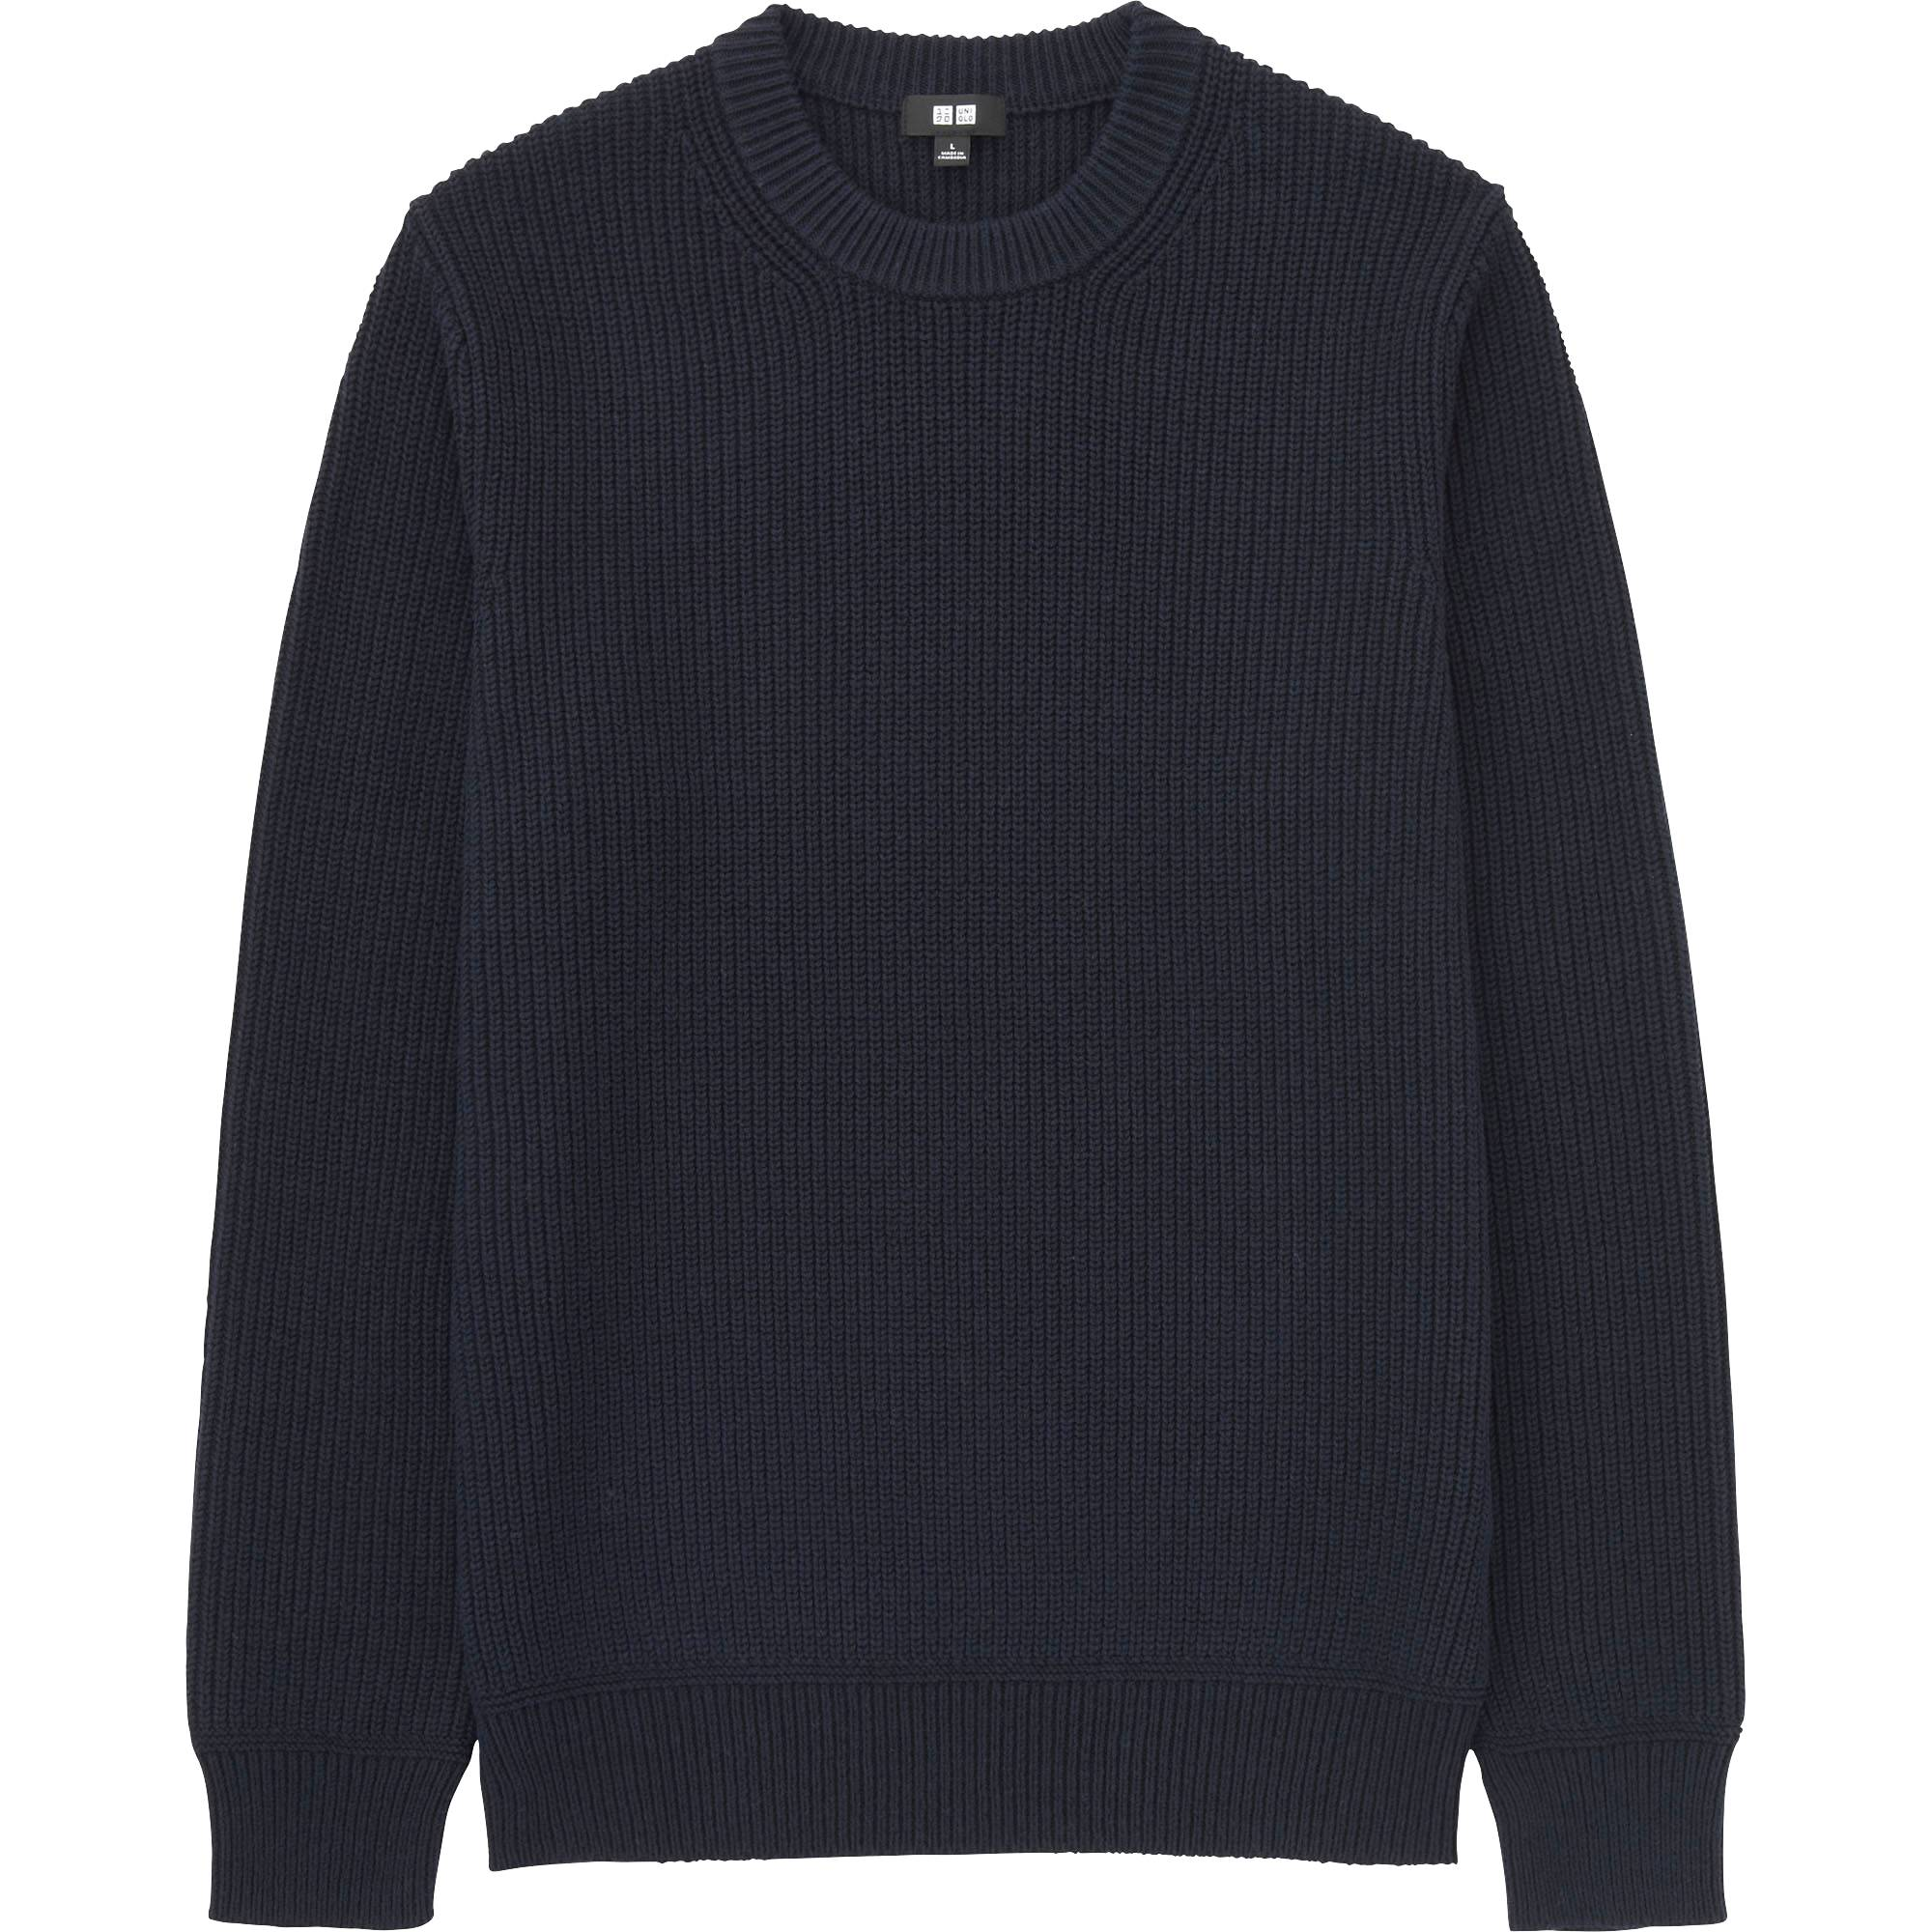 MEN RIBBED CREWNECK SWEATER | UNIQLO US